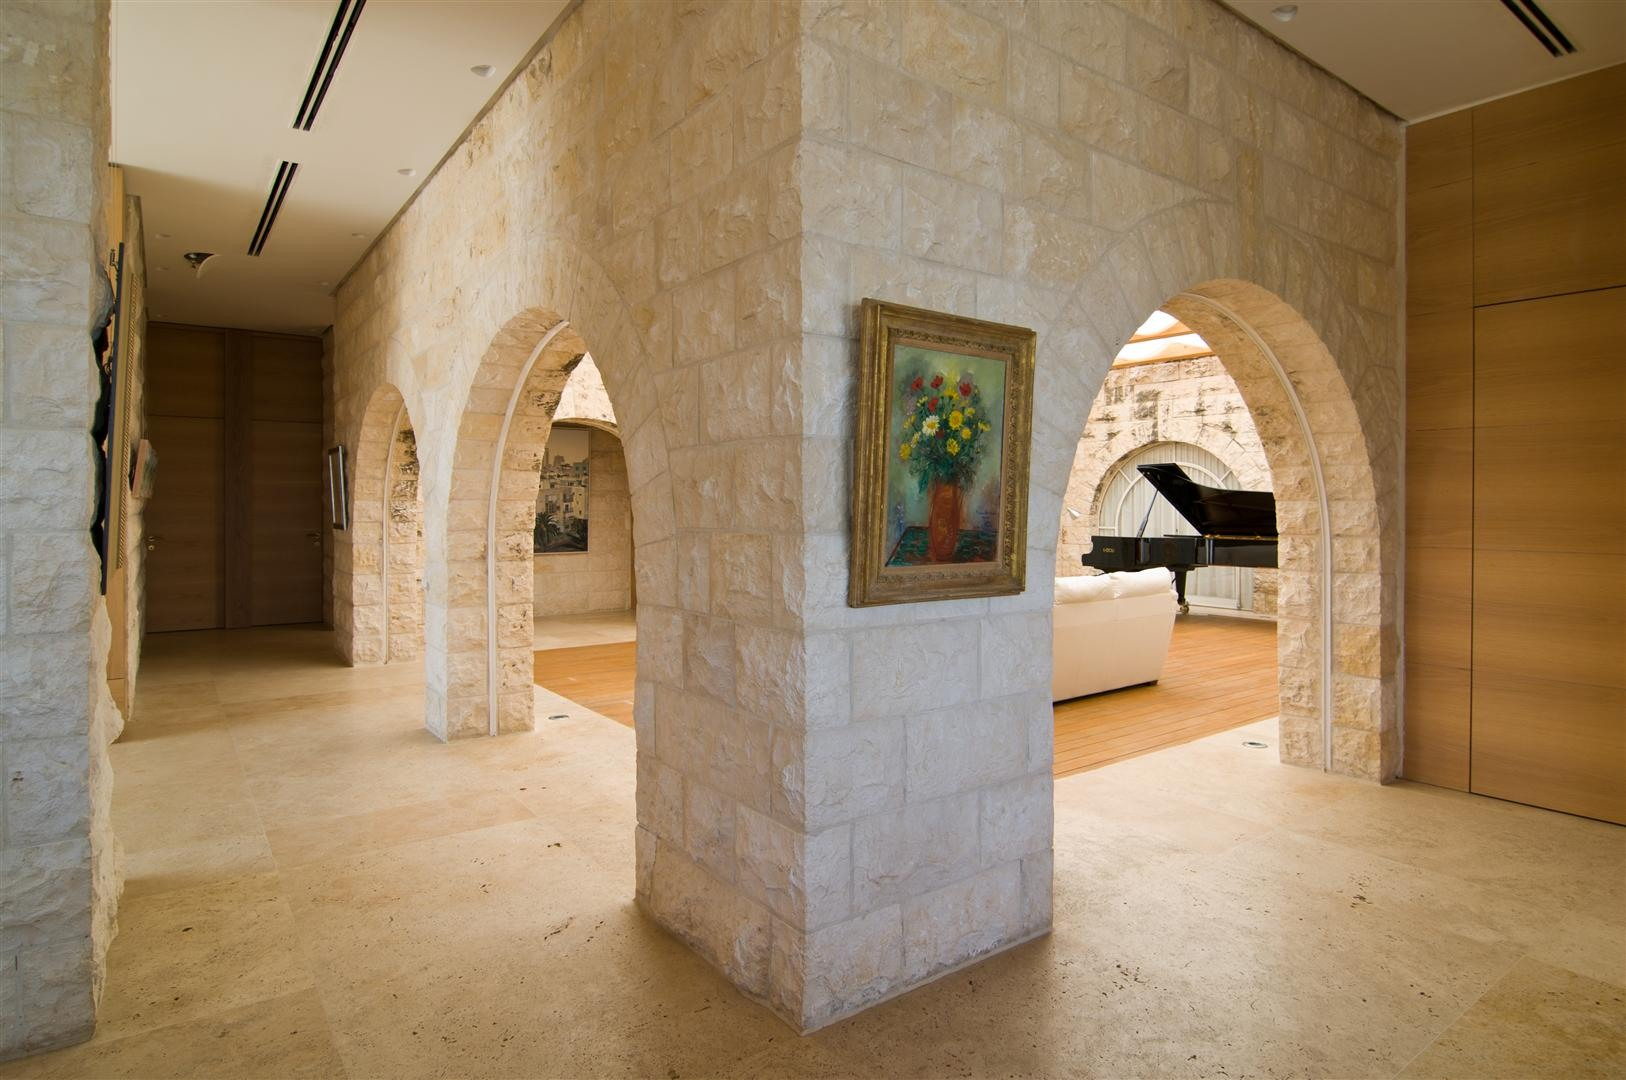 Entrance Hall, Stone Arches, Contemporary Stone House in Jerusalem, Israel